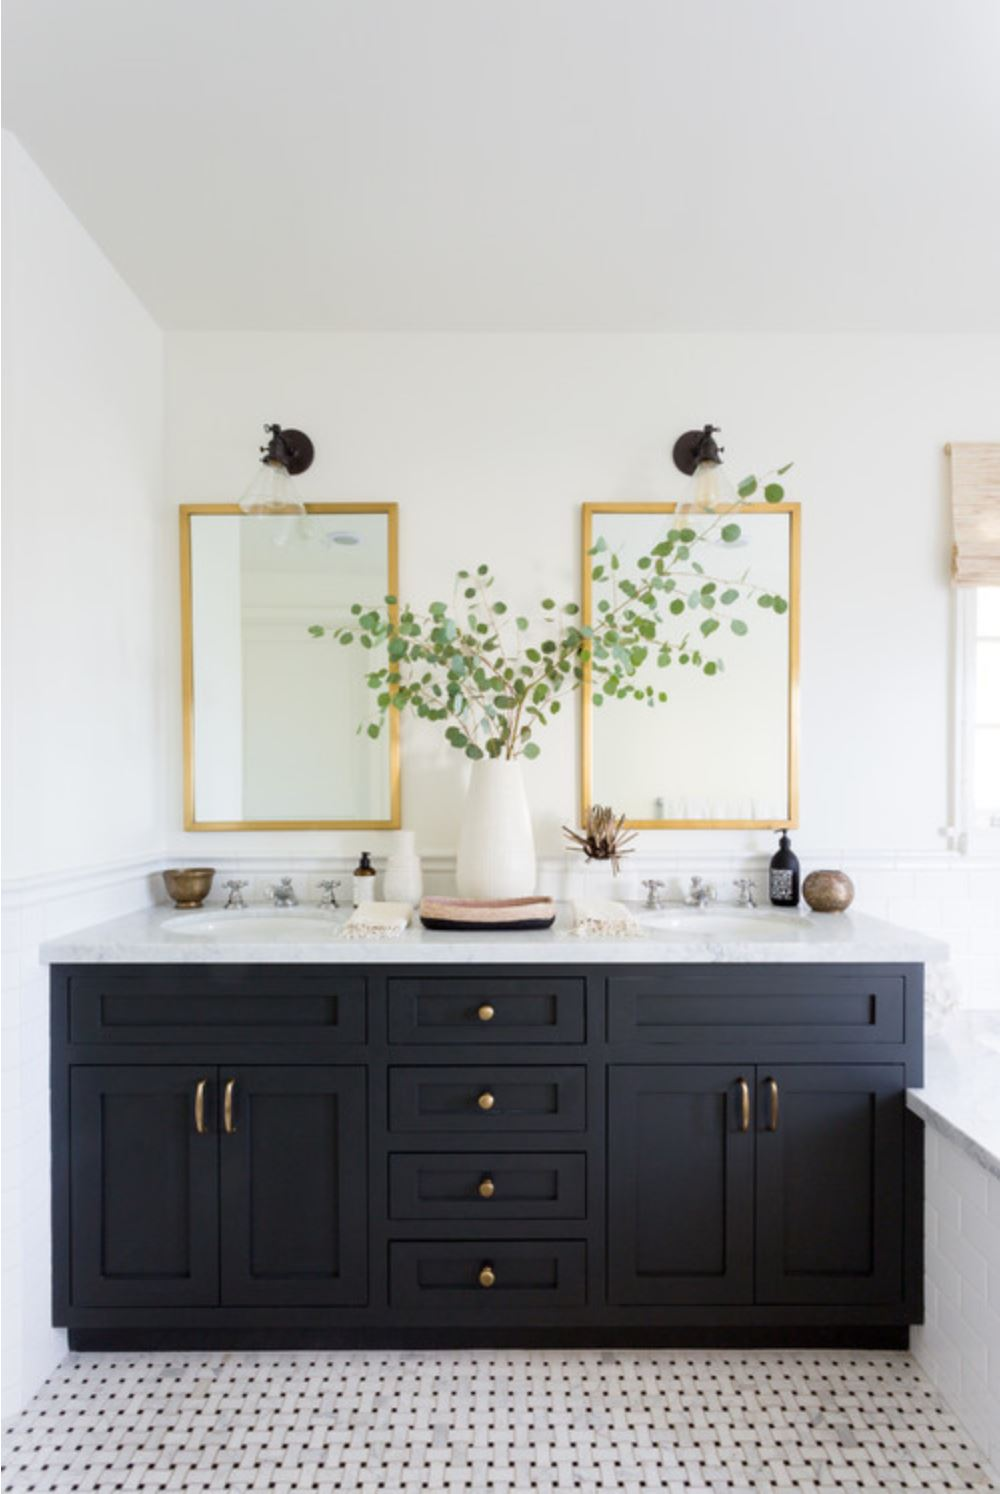 From Realtor Magazine 12 30 2019 Fourth of the Top 10 Bathrooms of 2019 Hoey Team eXp Realty